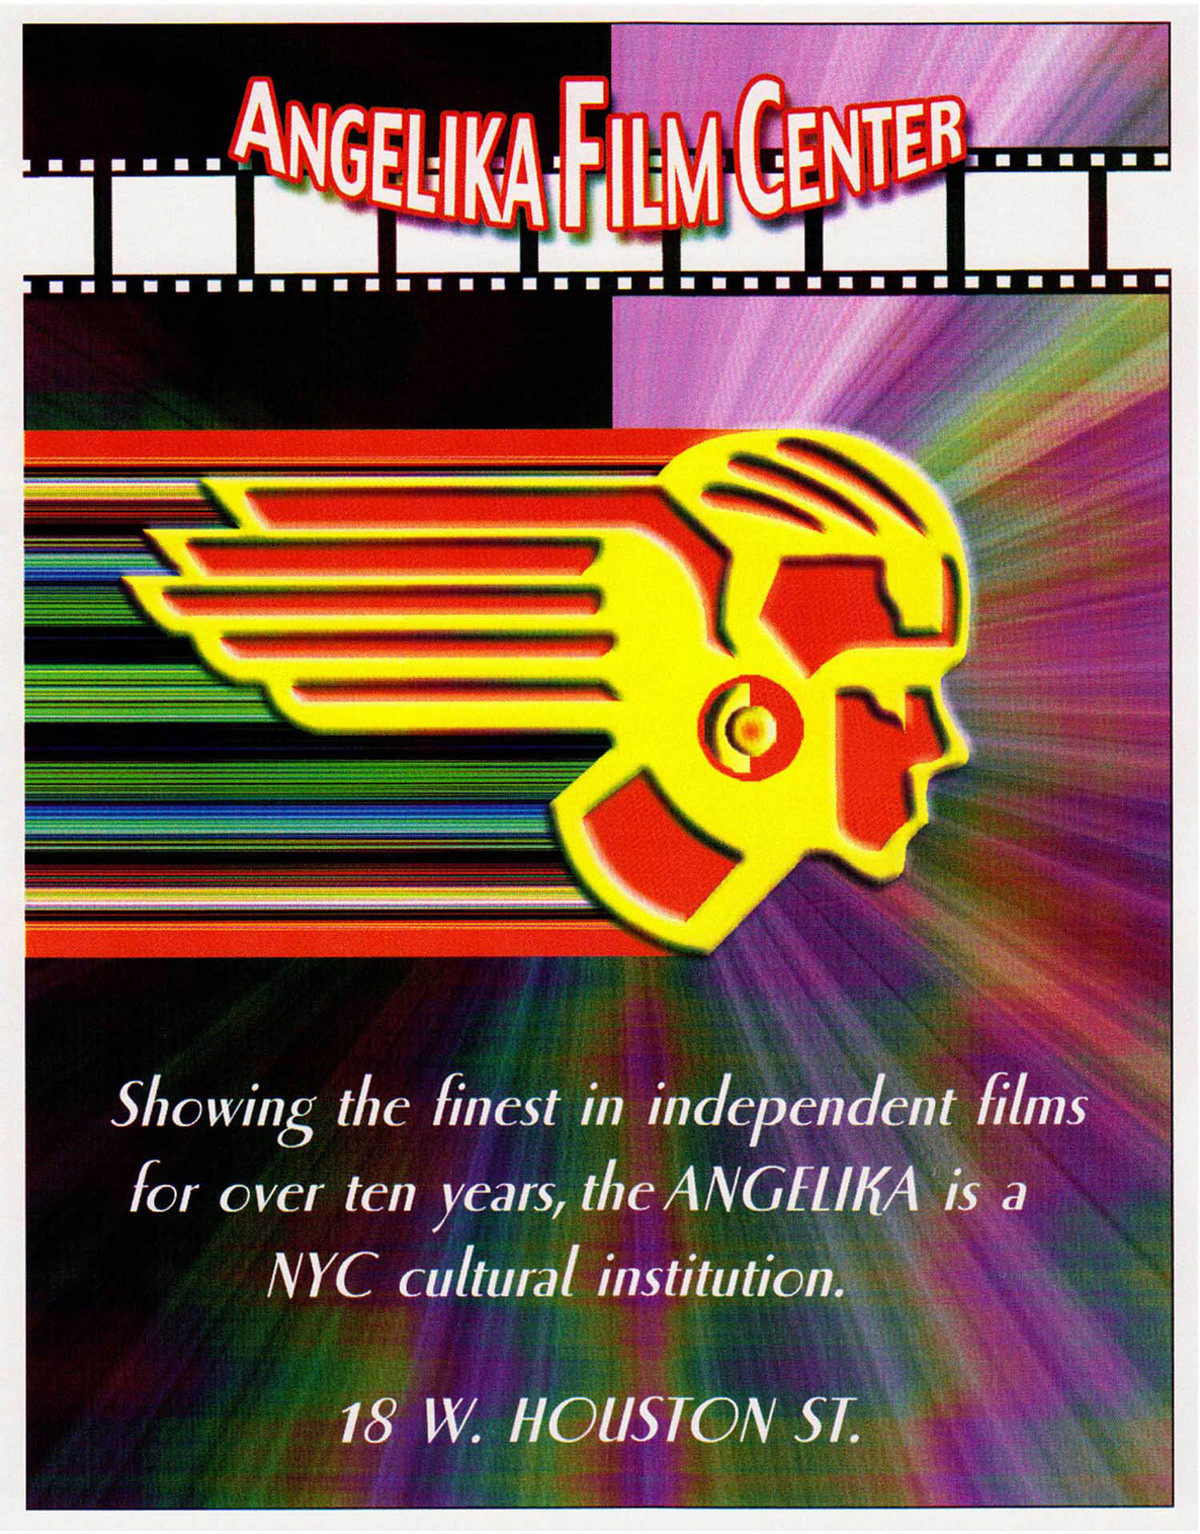 This piece is a poster advertisement for the Angelika Film Center, an independent film center located in NYC.